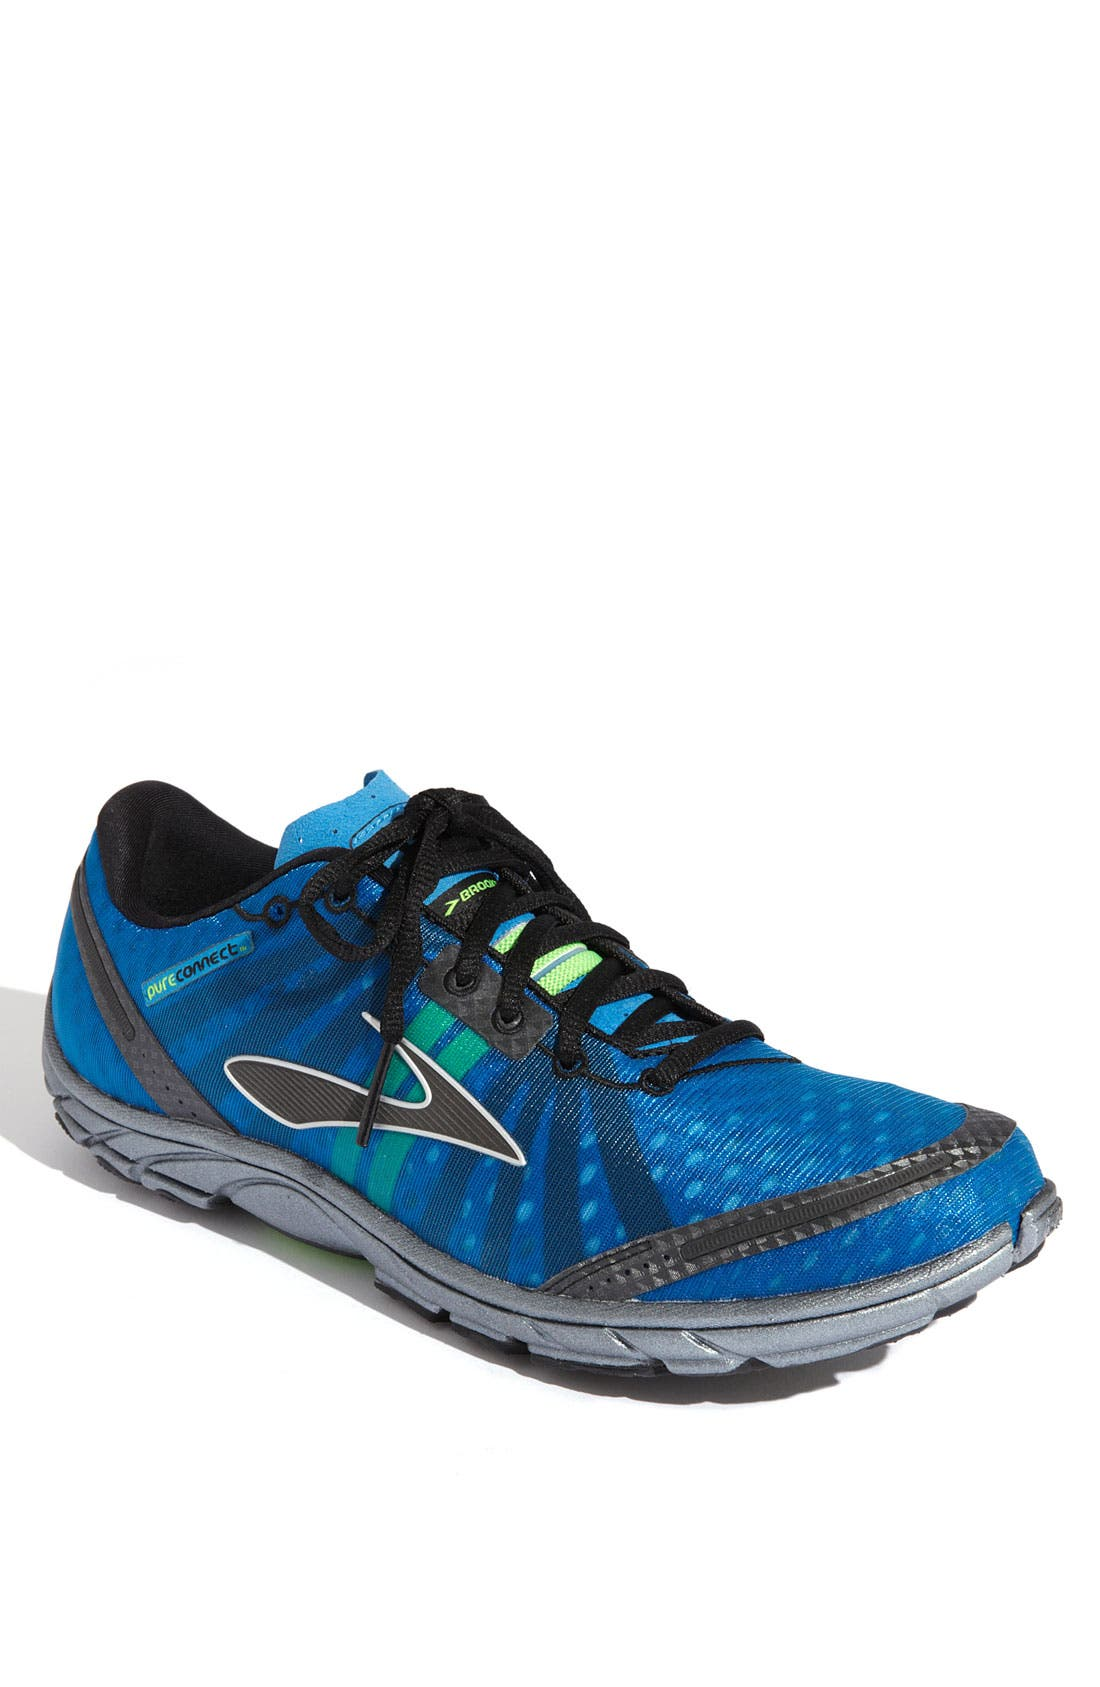 Alternate Image 1 Selected - Brooks 'PureConnect' Running Shoe (Men)